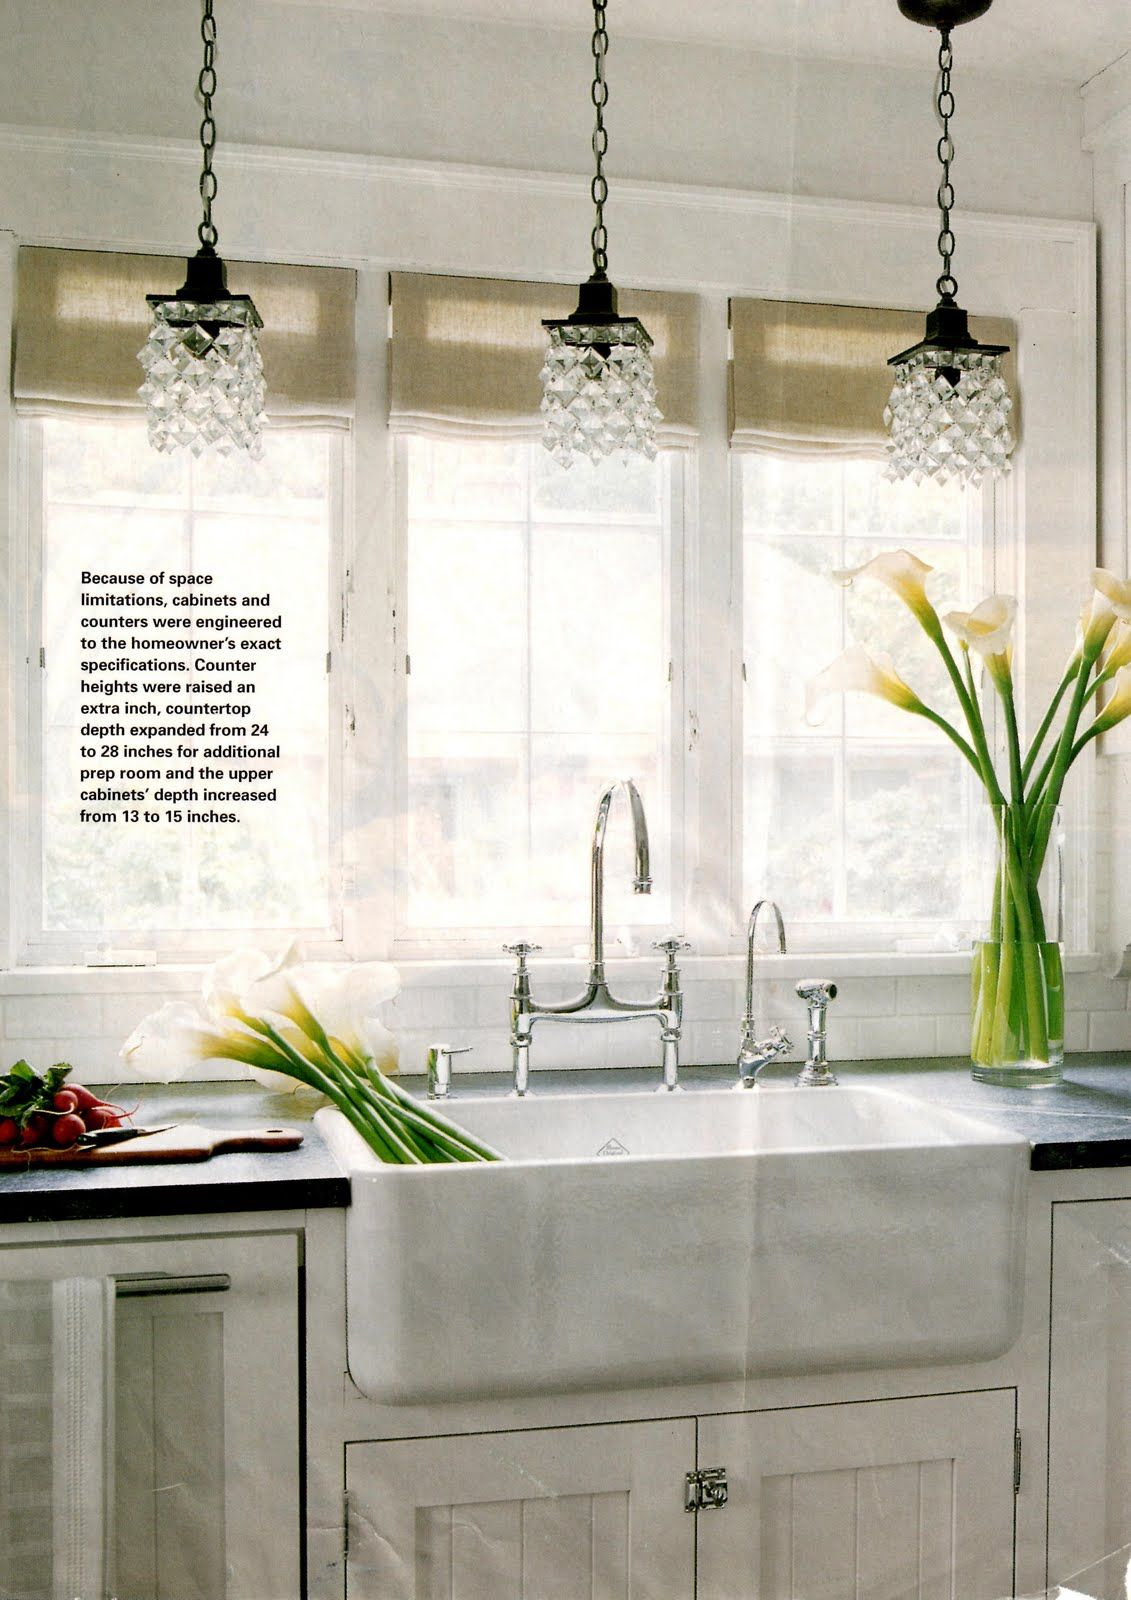 A Light For My Kitchen Sink Kitchen Sink Lighting Kitchen Sink Design Modern Kitchen Sinks